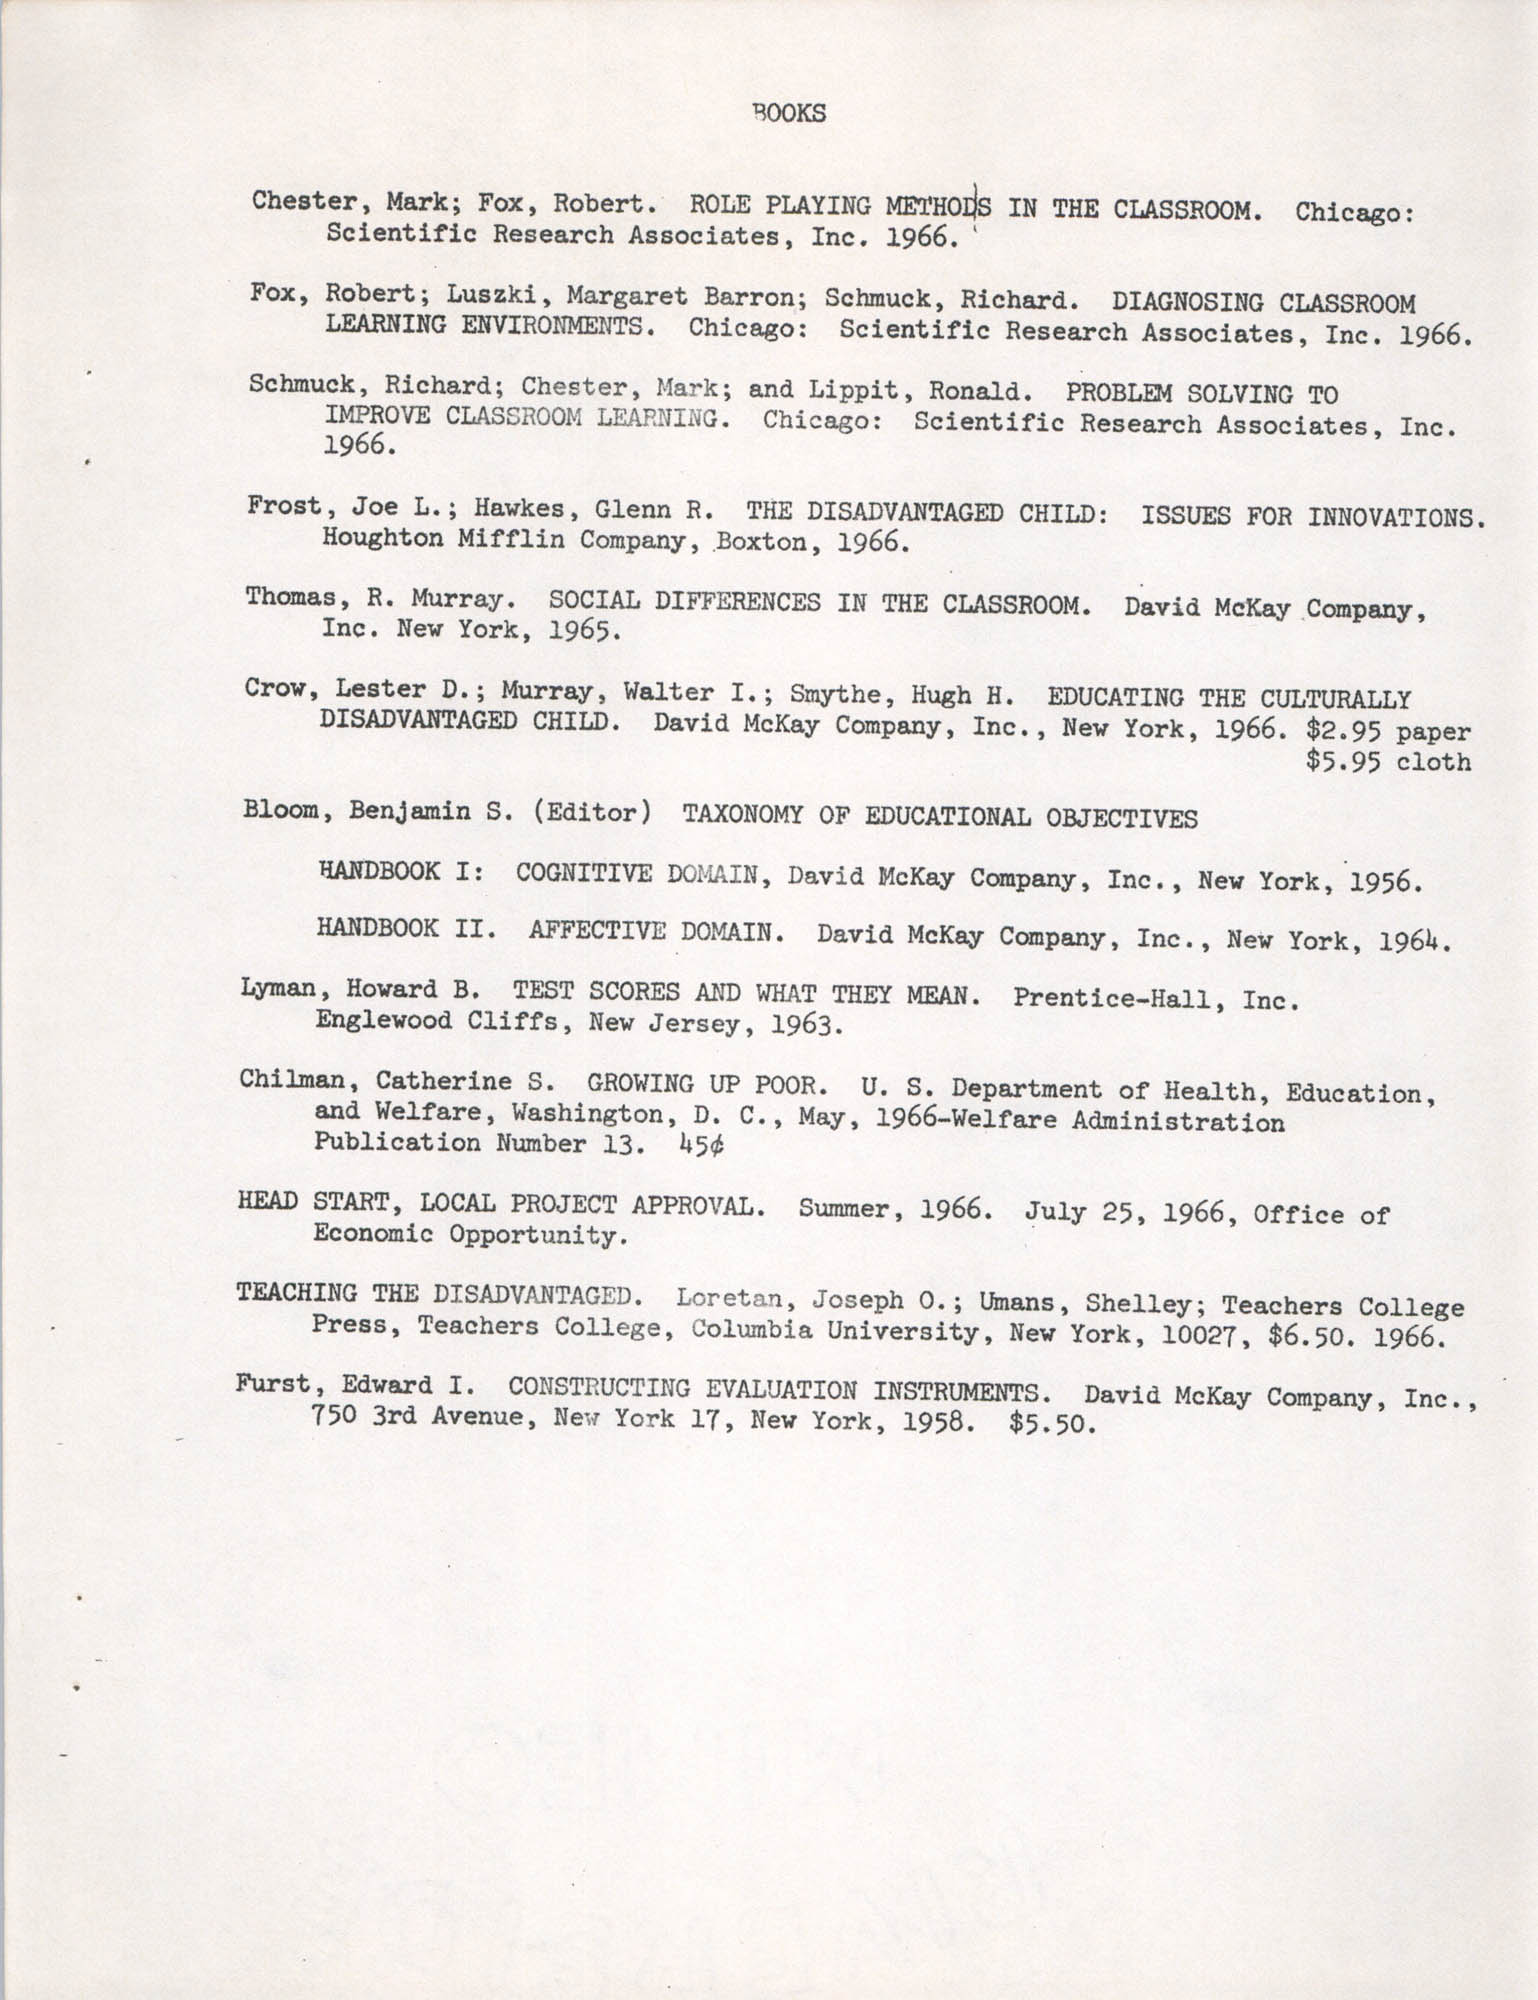 The Disadvantaged, A Bibliography of Resource Materials, Page 2